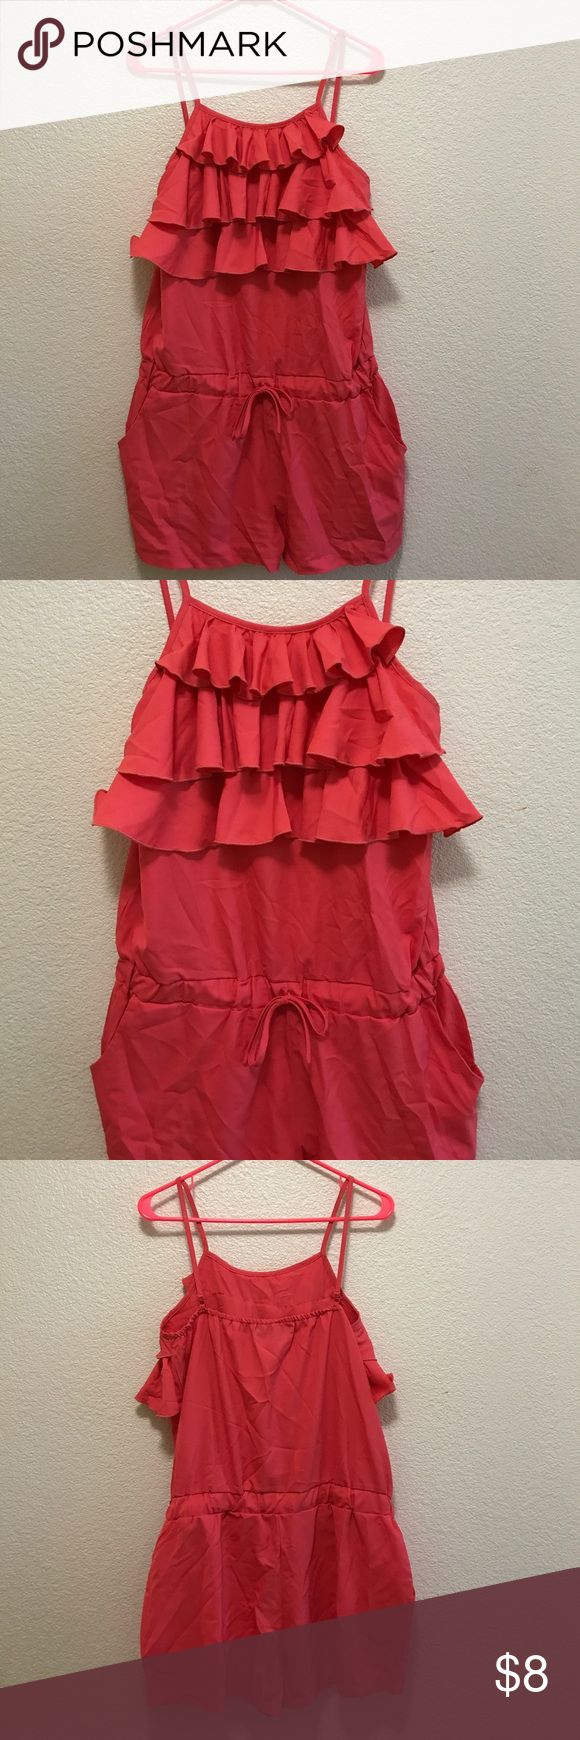 New no tags size M coral romper New no tags great for summer nice color Allegra K Pants Jumpsuits & Rompers